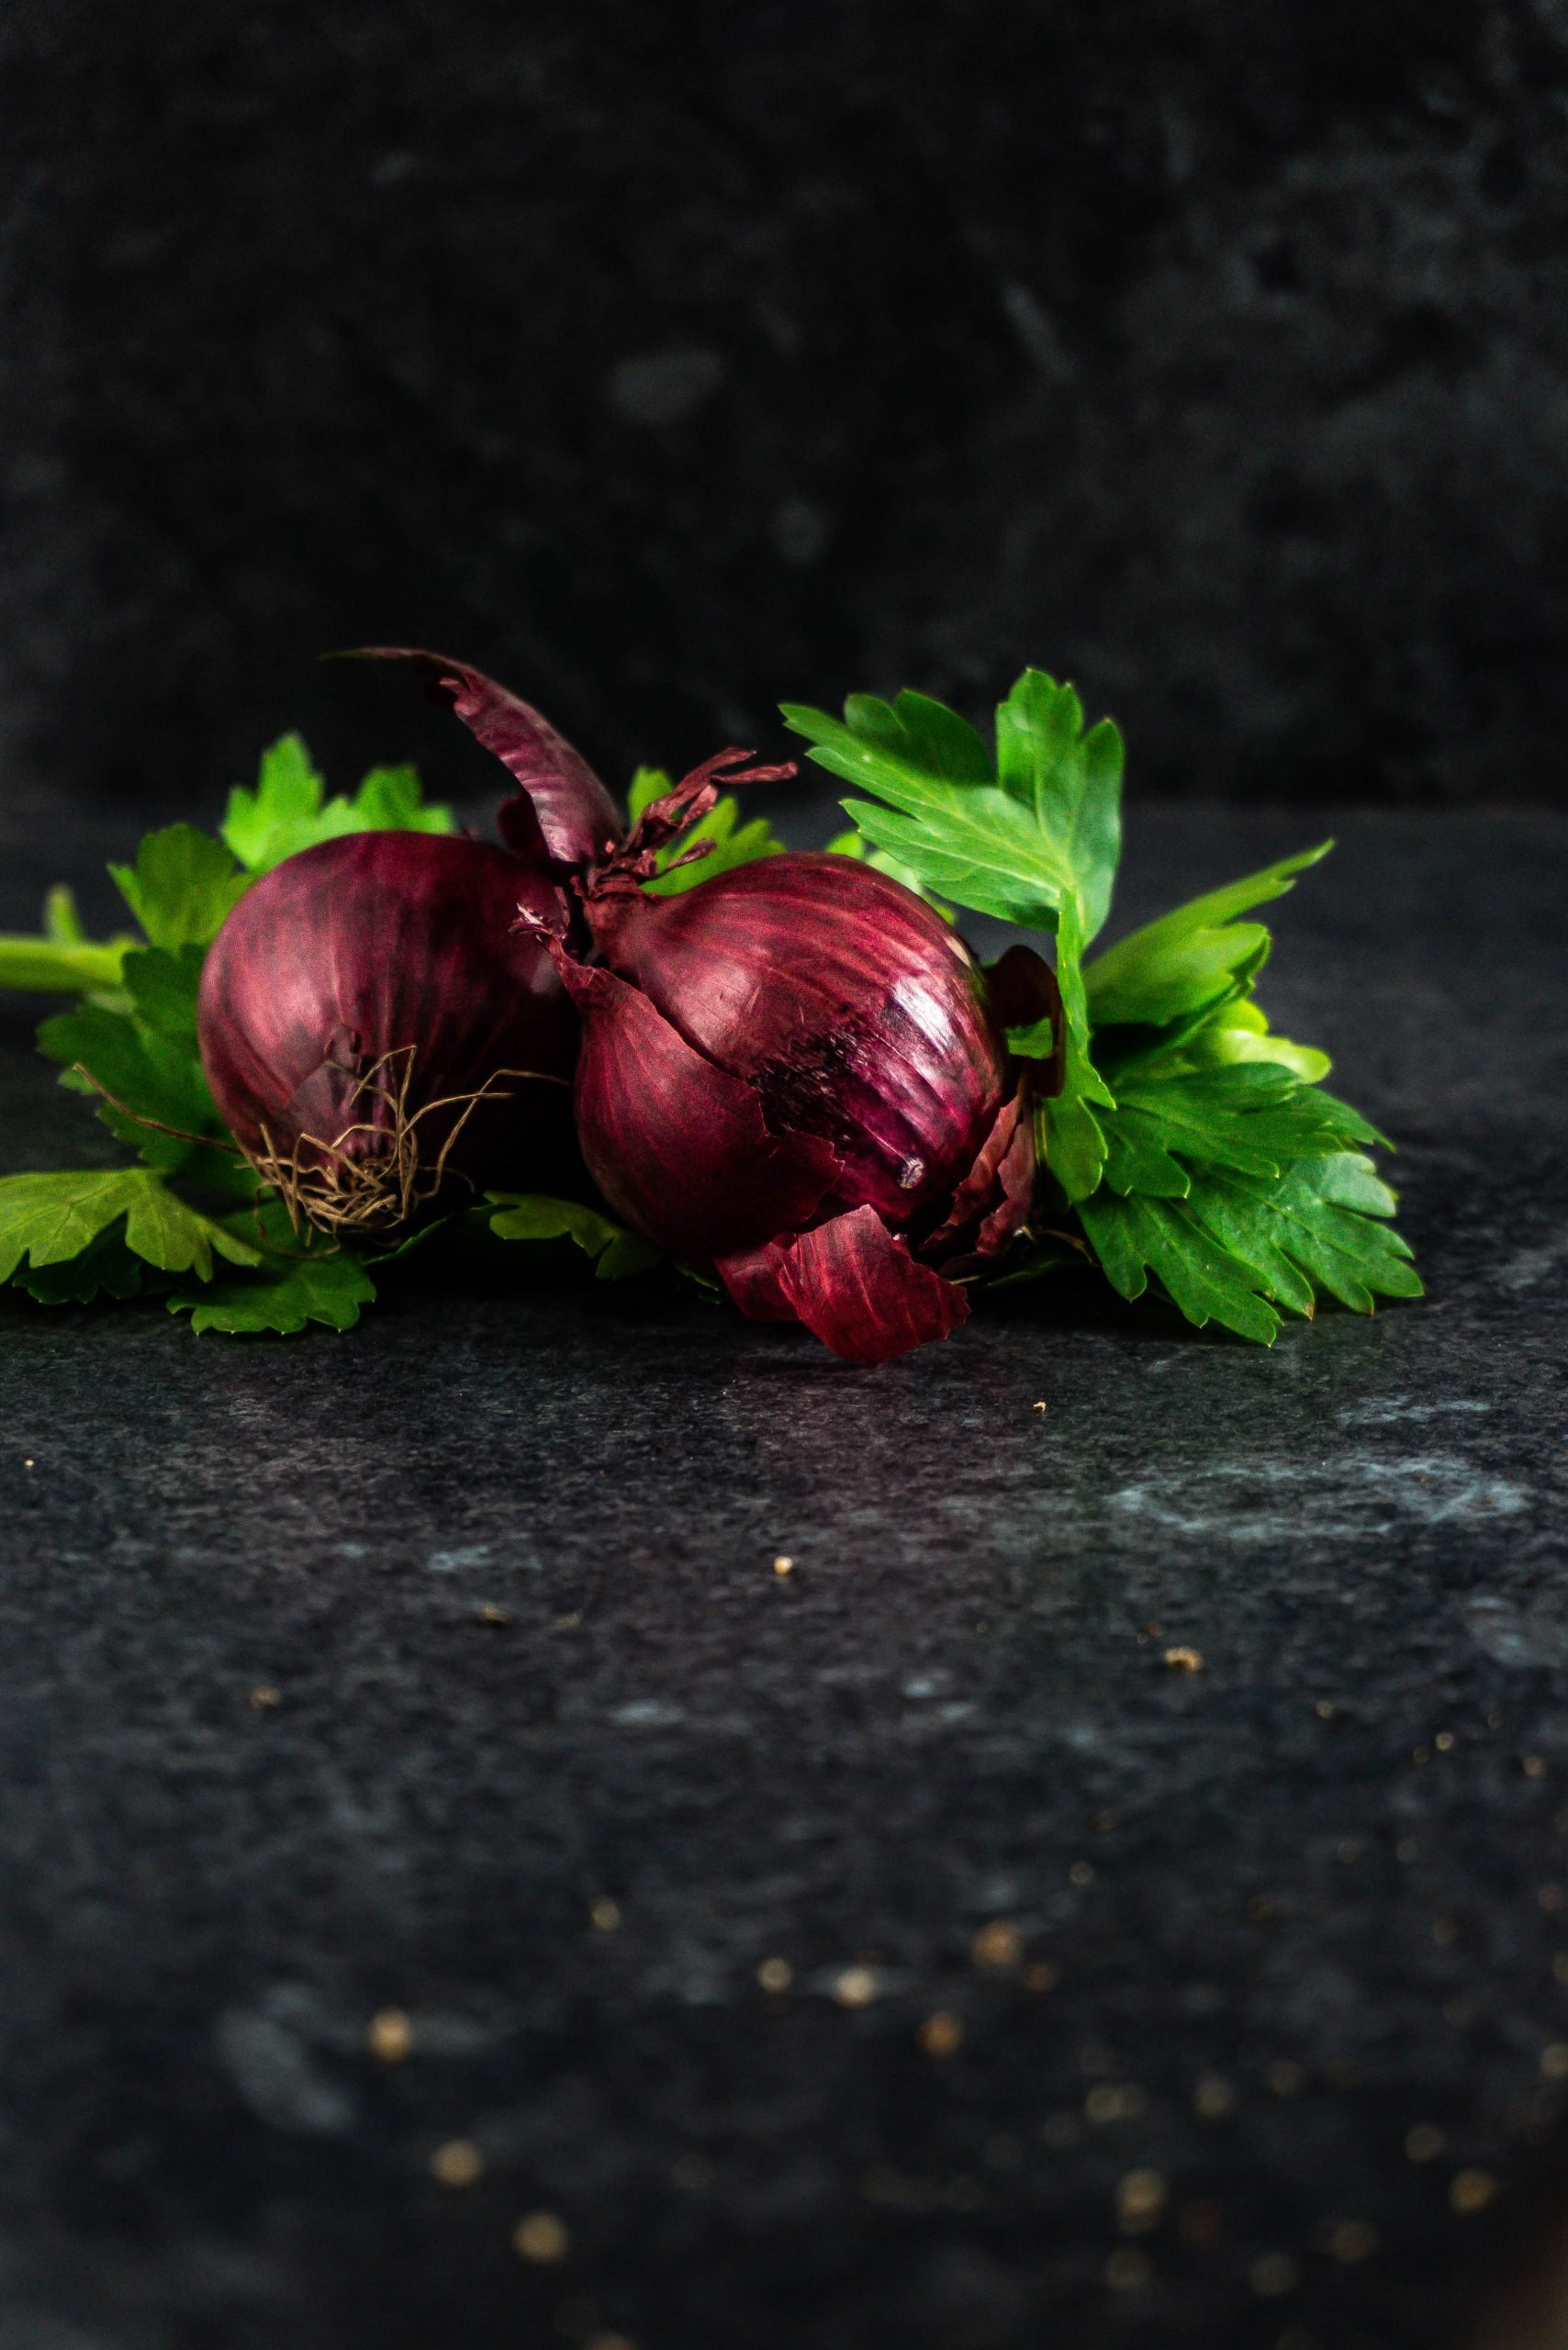 Red onion and parsley on a dark background